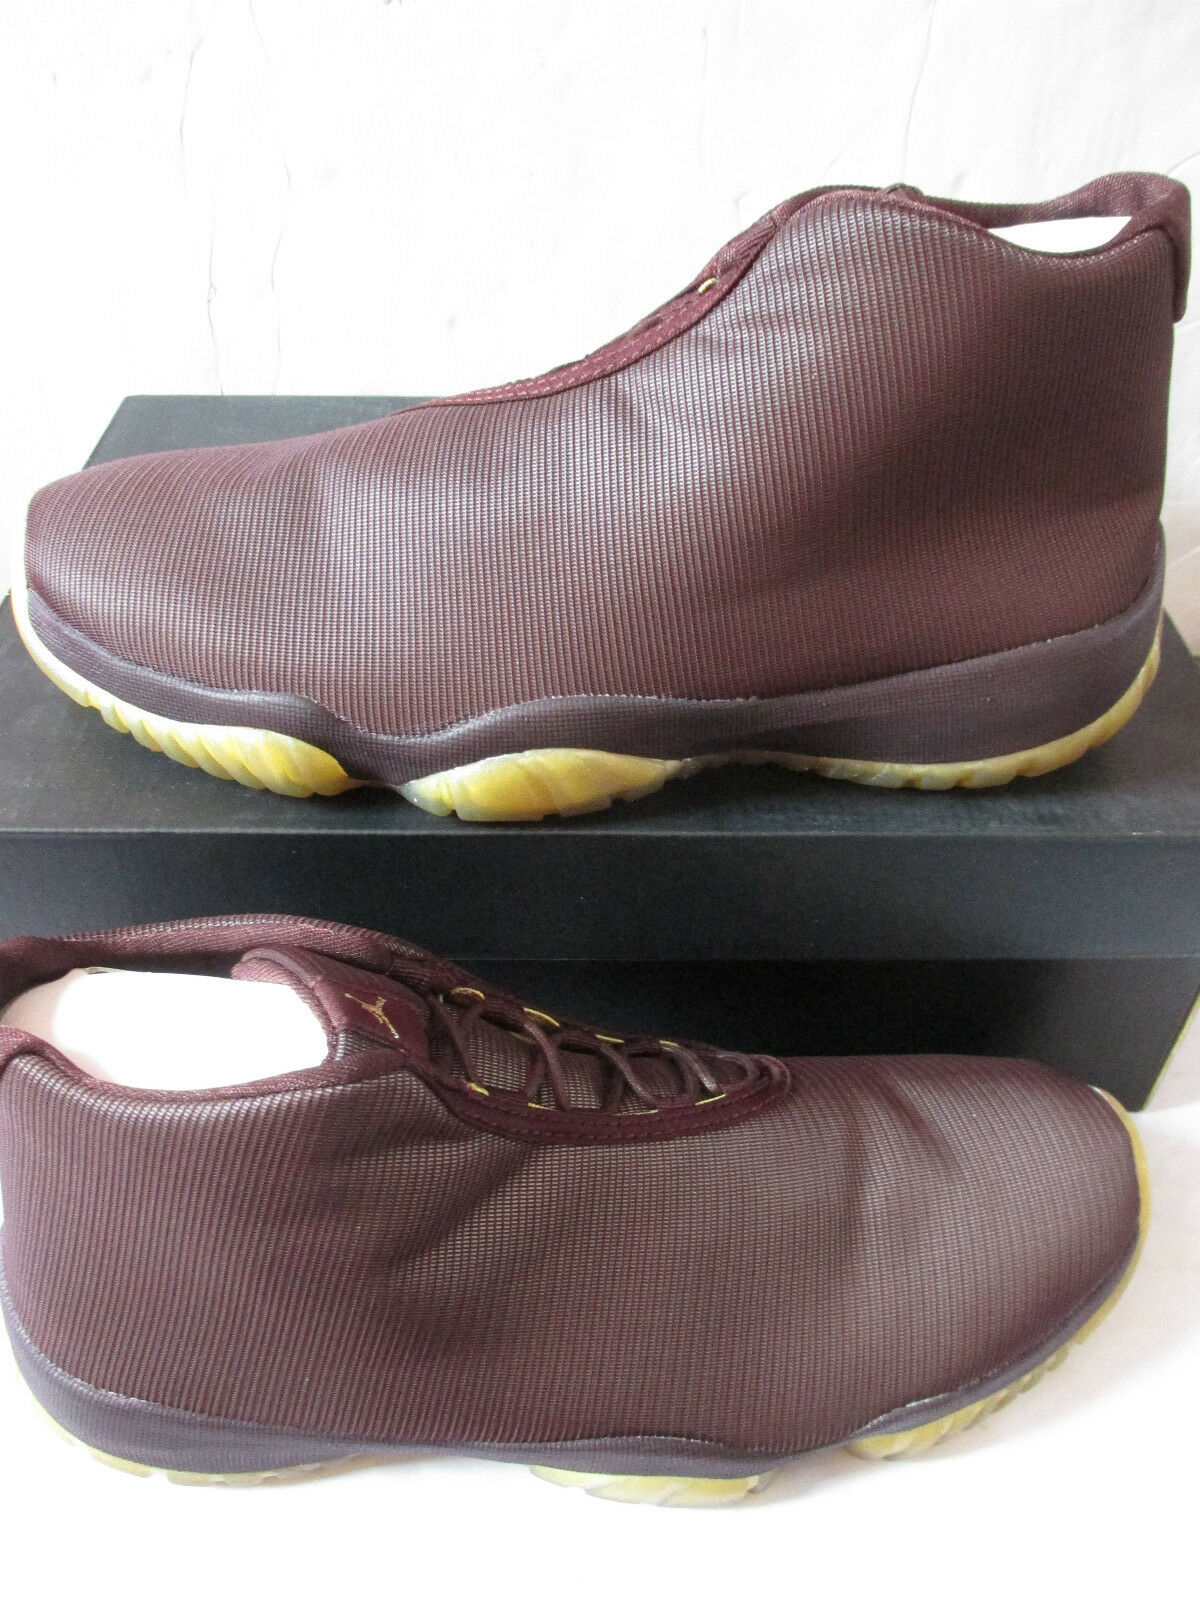 nike nike nike air jordan future mens hi top trainers 656503 670 sneakers shoes 7b0488